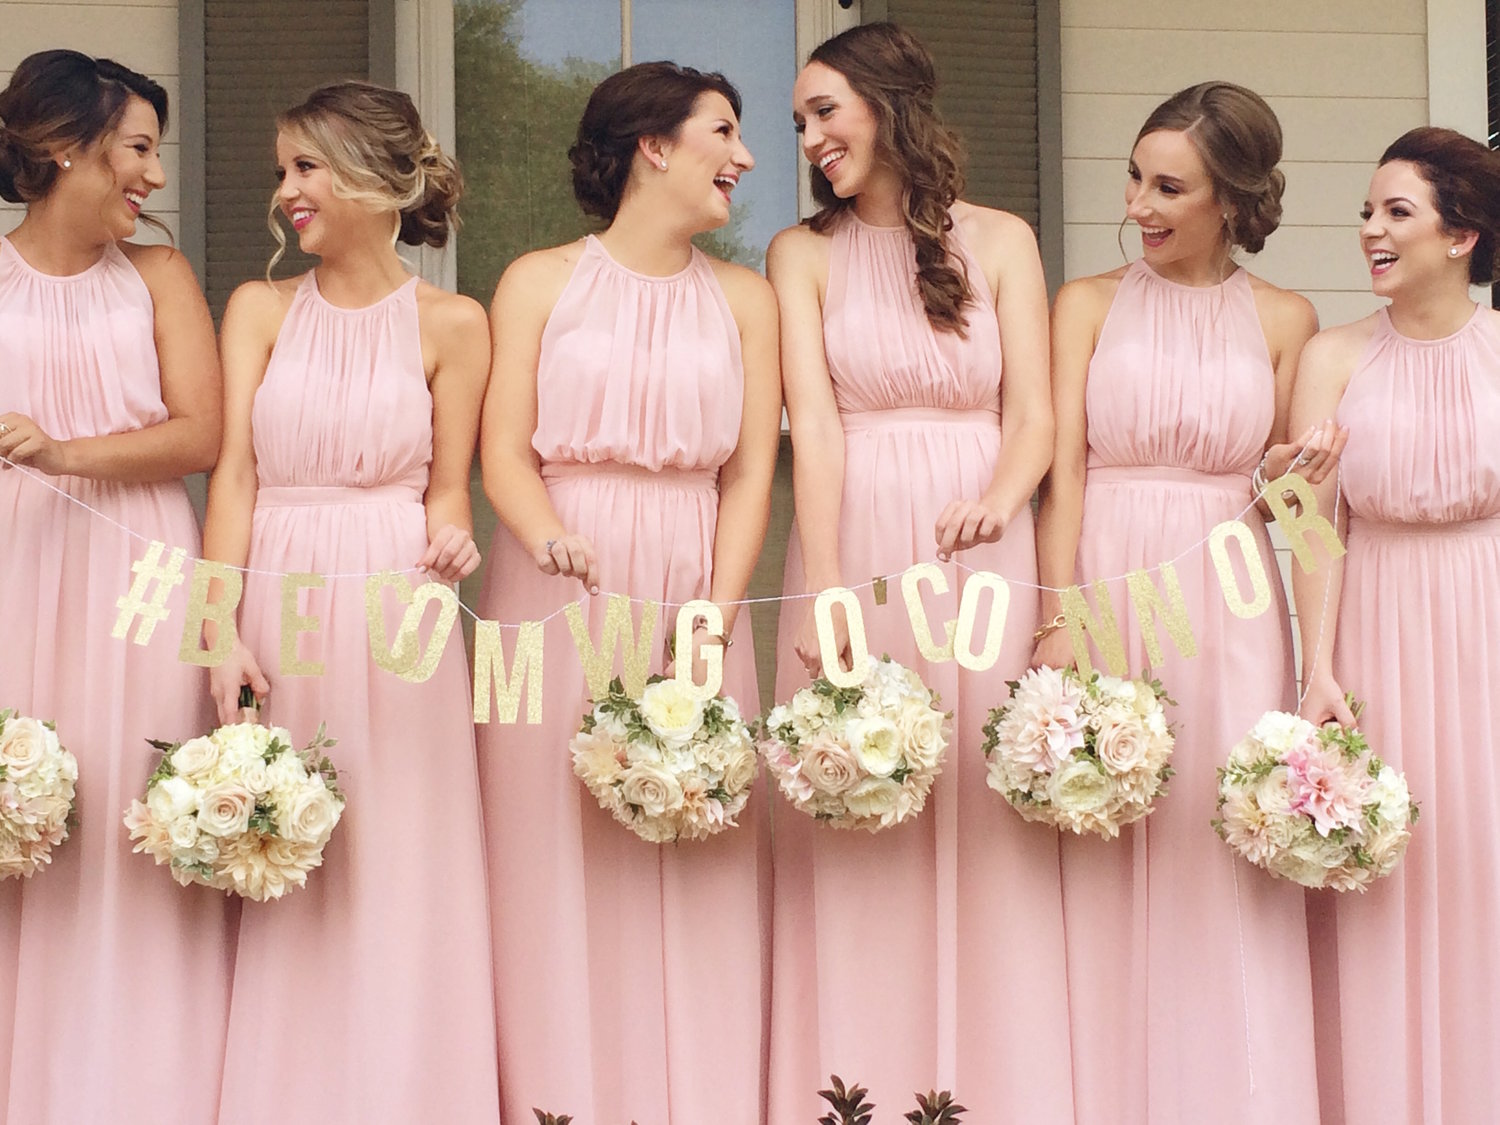 group of bridesmaids in pink dresses and white and blush bouquets looking at each other and laughing